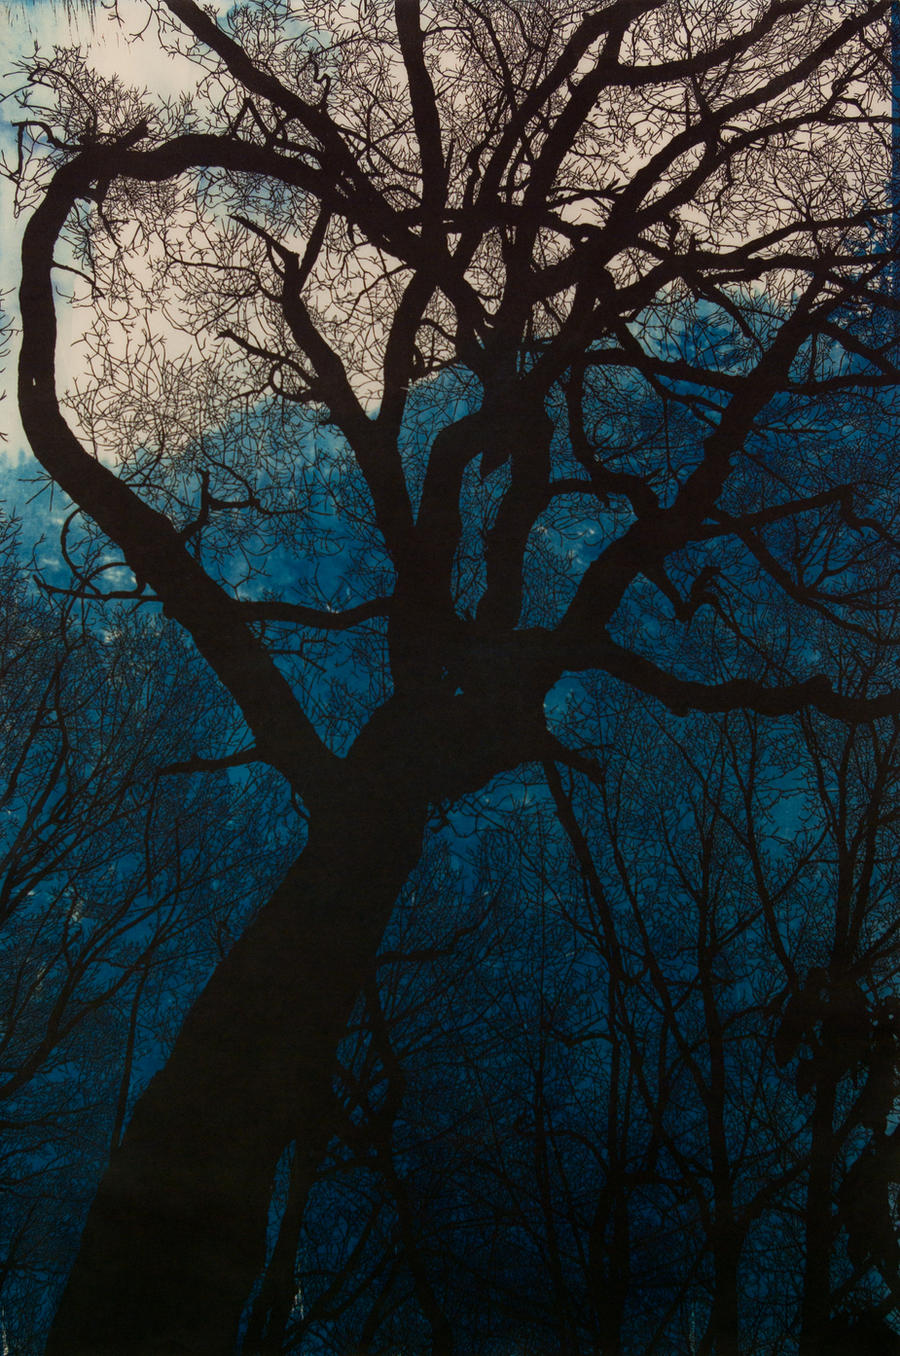 Night Descends with Cyanotype by mouse2cat